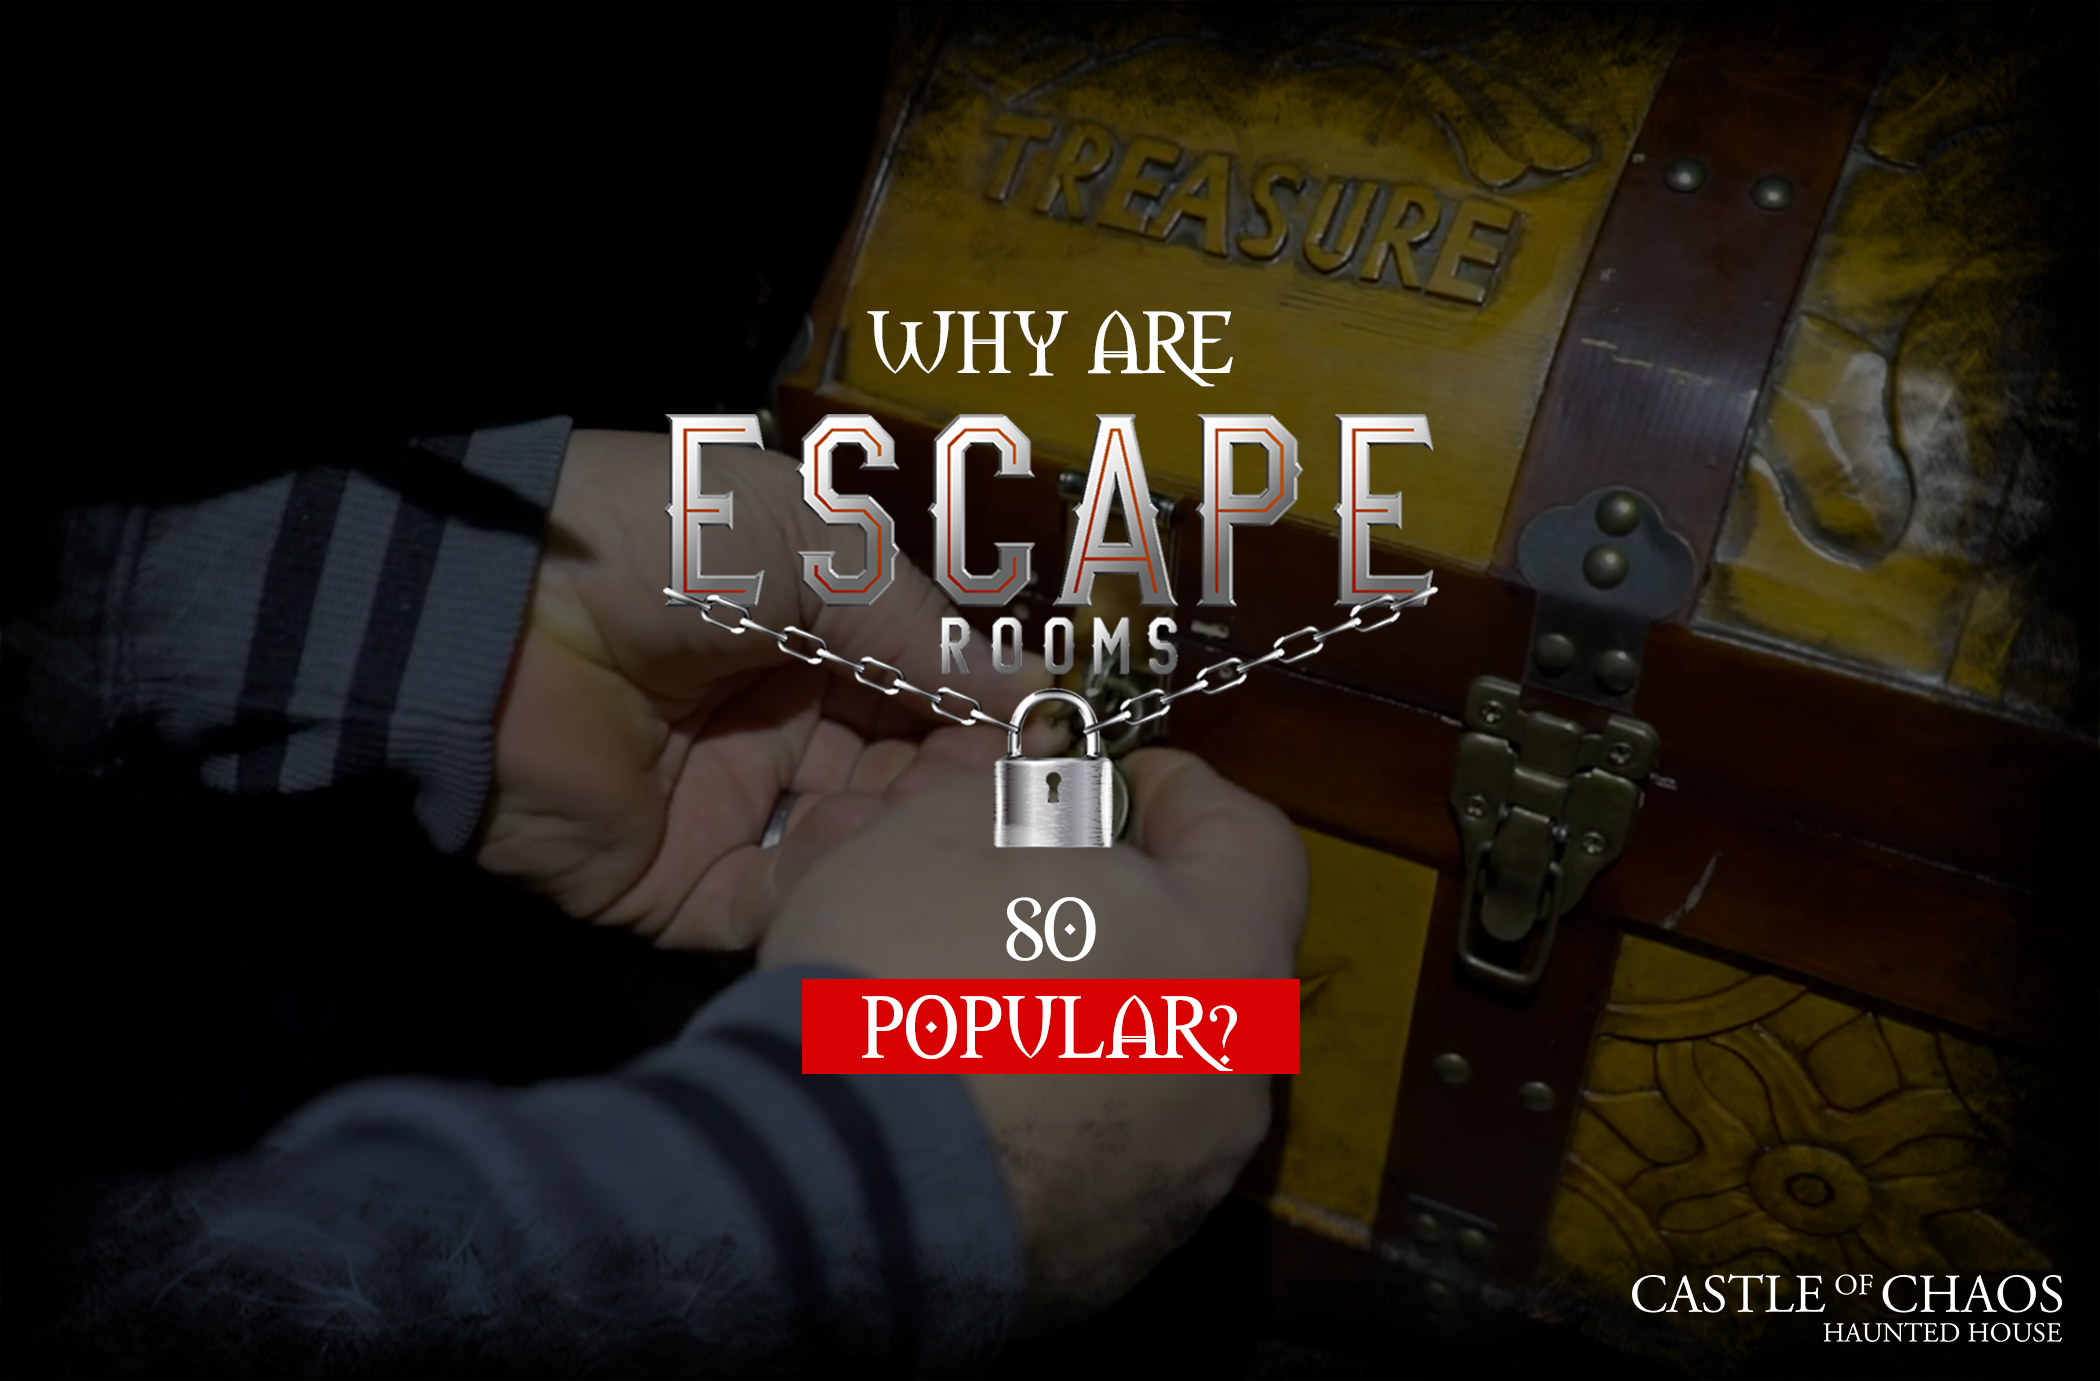 Why escape rooms are becoming so popular